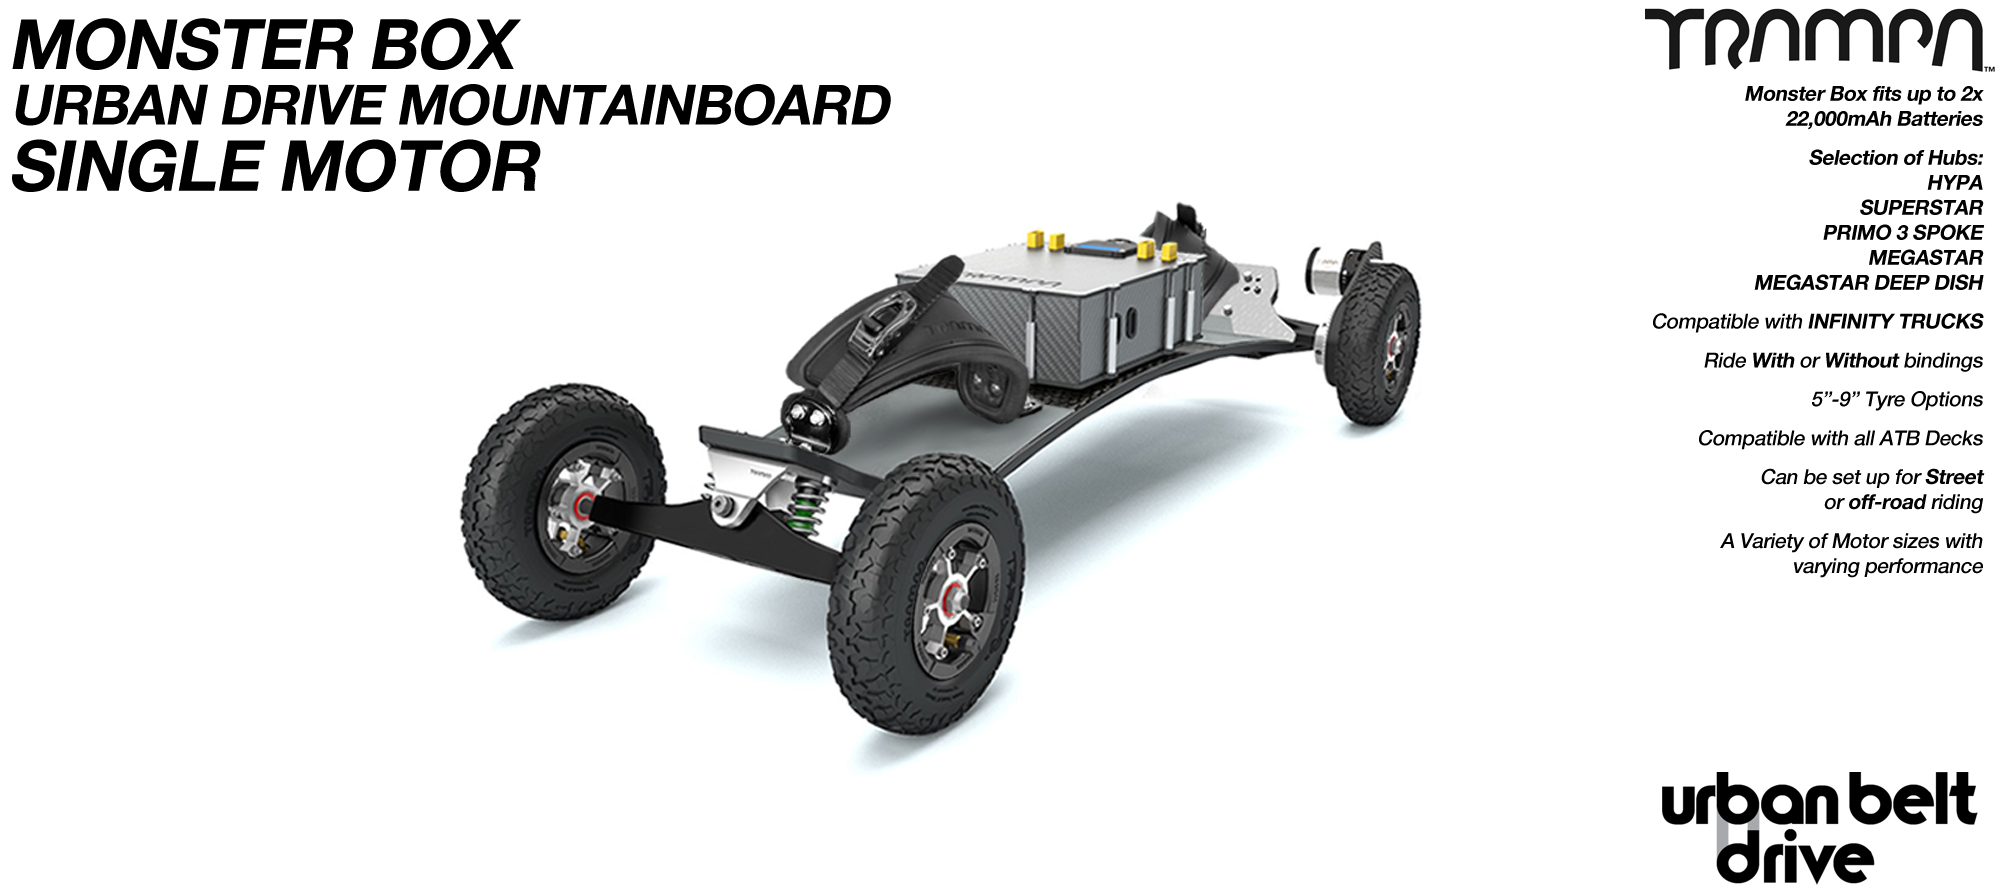 URBAN Electric Mountainboard - Single Motor Urban Motor Mounts, ATB Trucks, 8 inch Wheels, MONSTER Box inc VESC